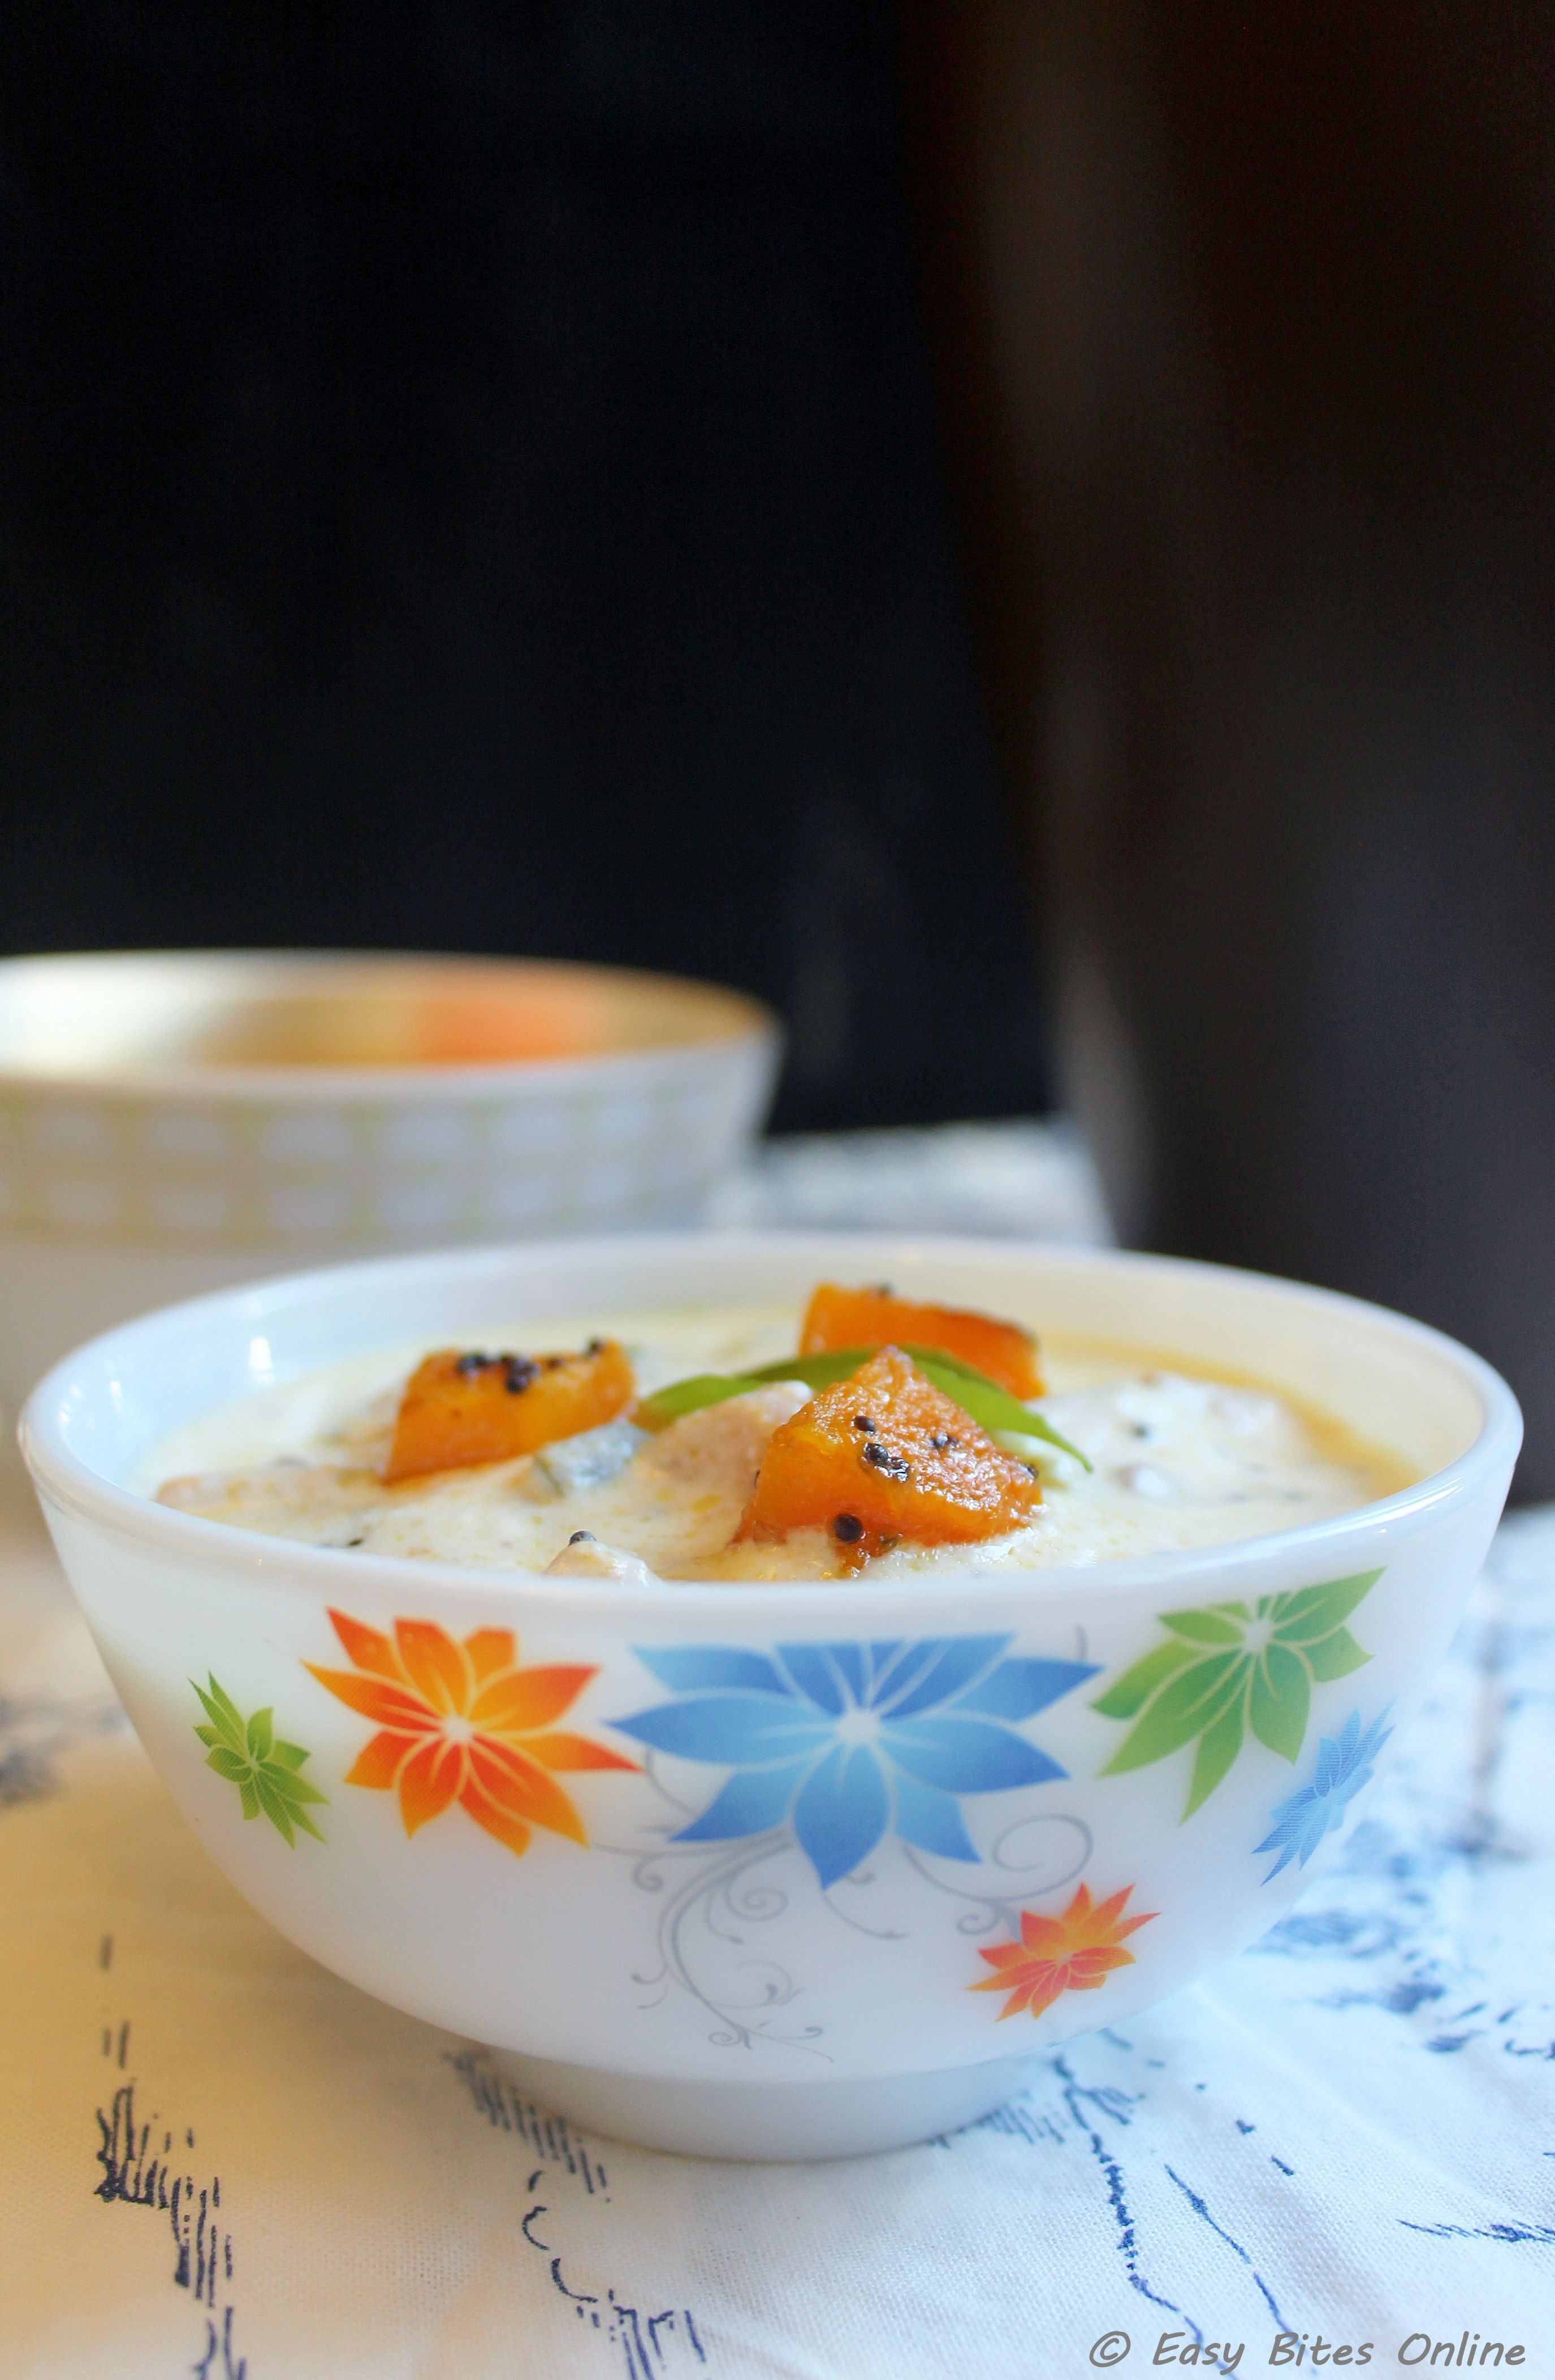 yellow raita